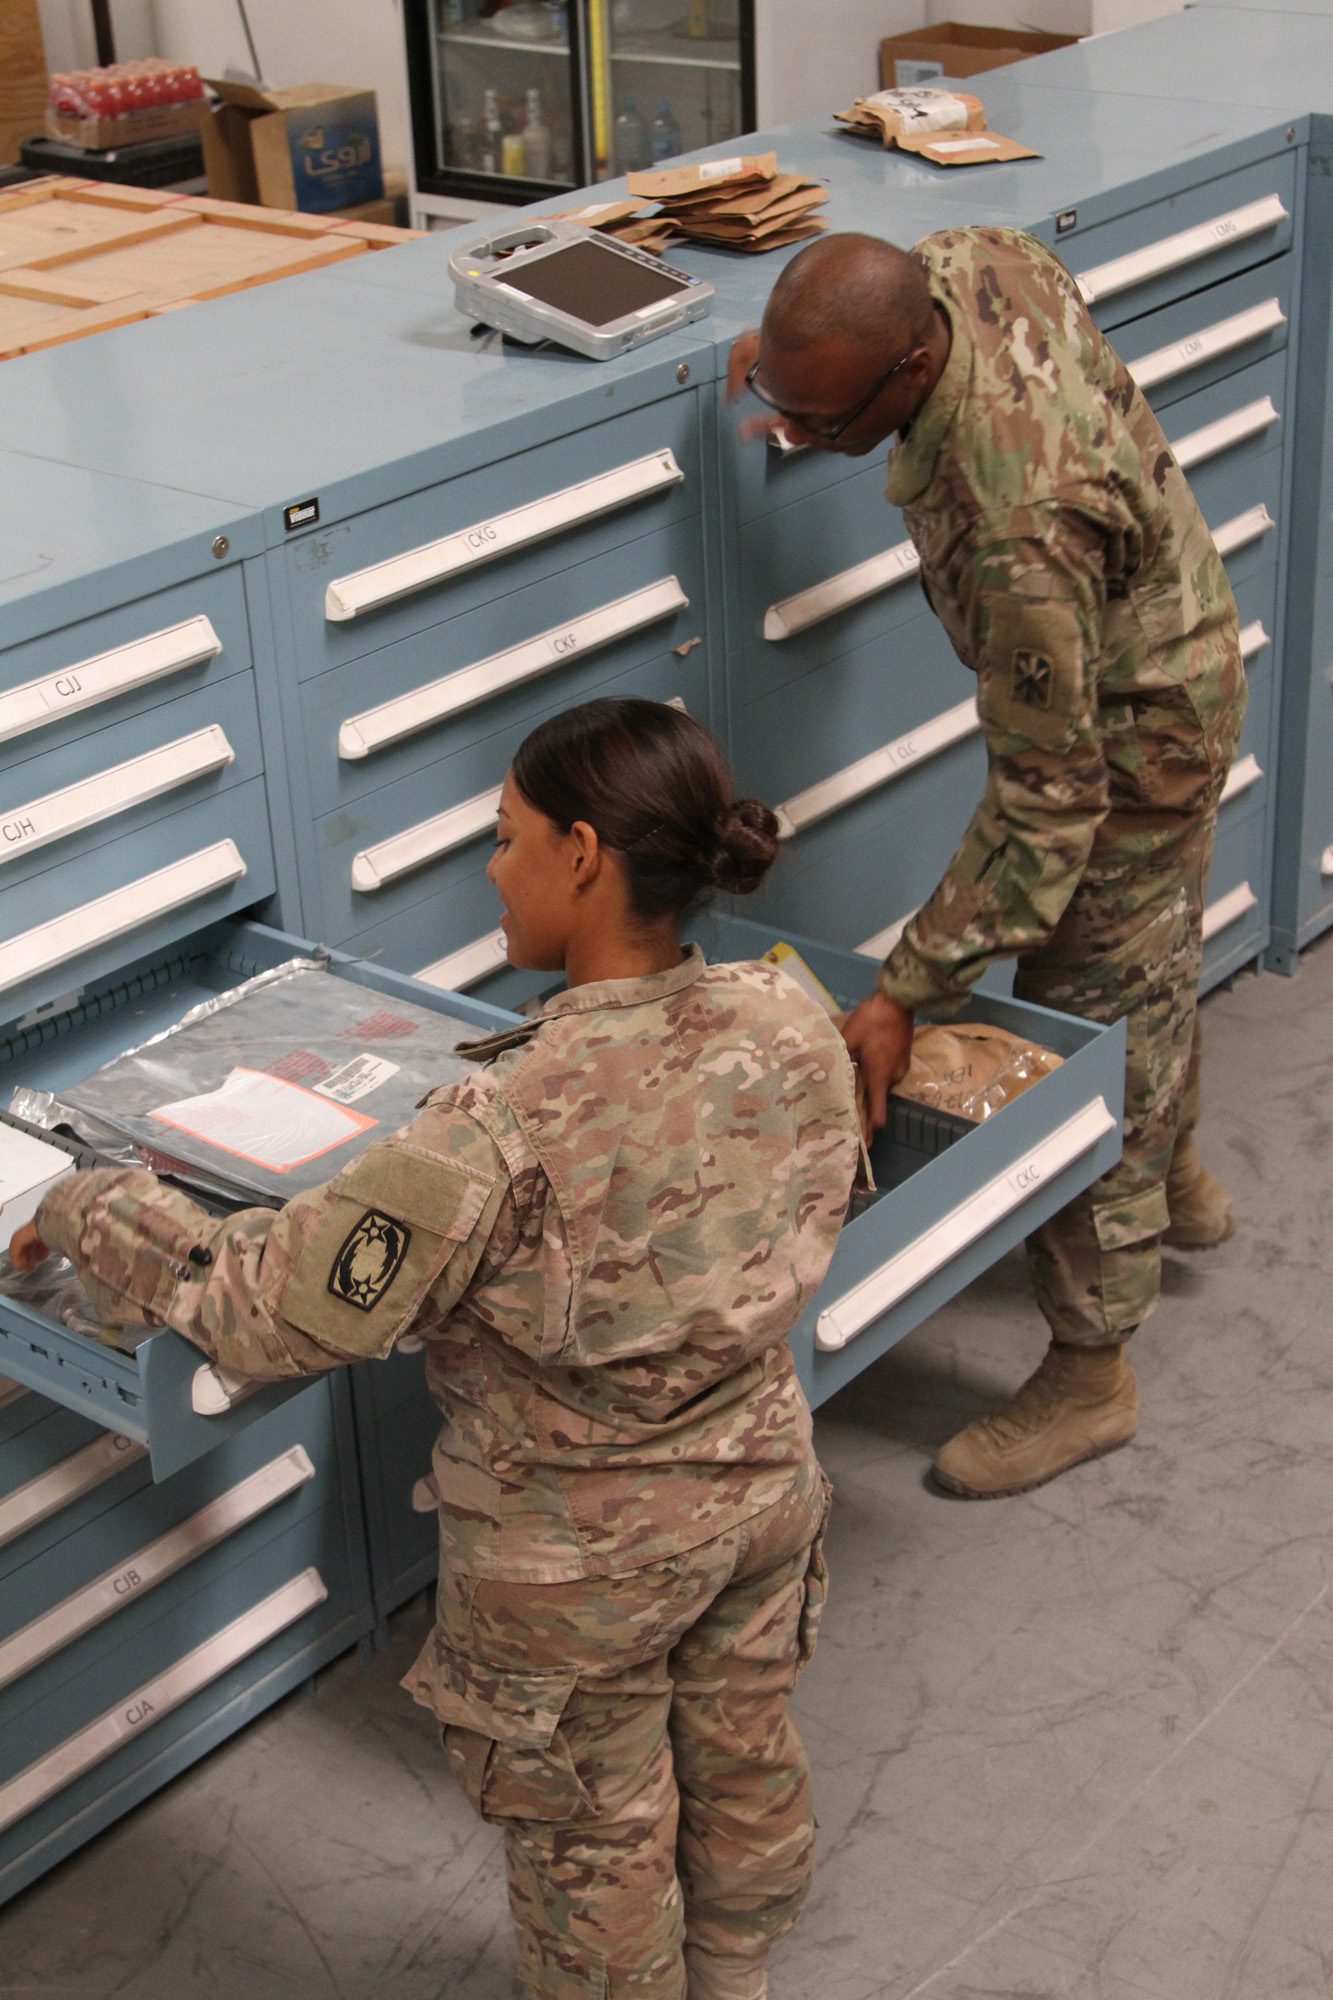 Soldiers check inventory at the supply support activity warehouse in Bahrain against data from the Global Combat Support System – Army. According to Williamson, mission dominance relies on viewing acquisition as a comprehensive process, from design and procurement to deployment, sustainment and disposal. (U.S. Army photo by Sgt. 1st Class Naurys Marte)